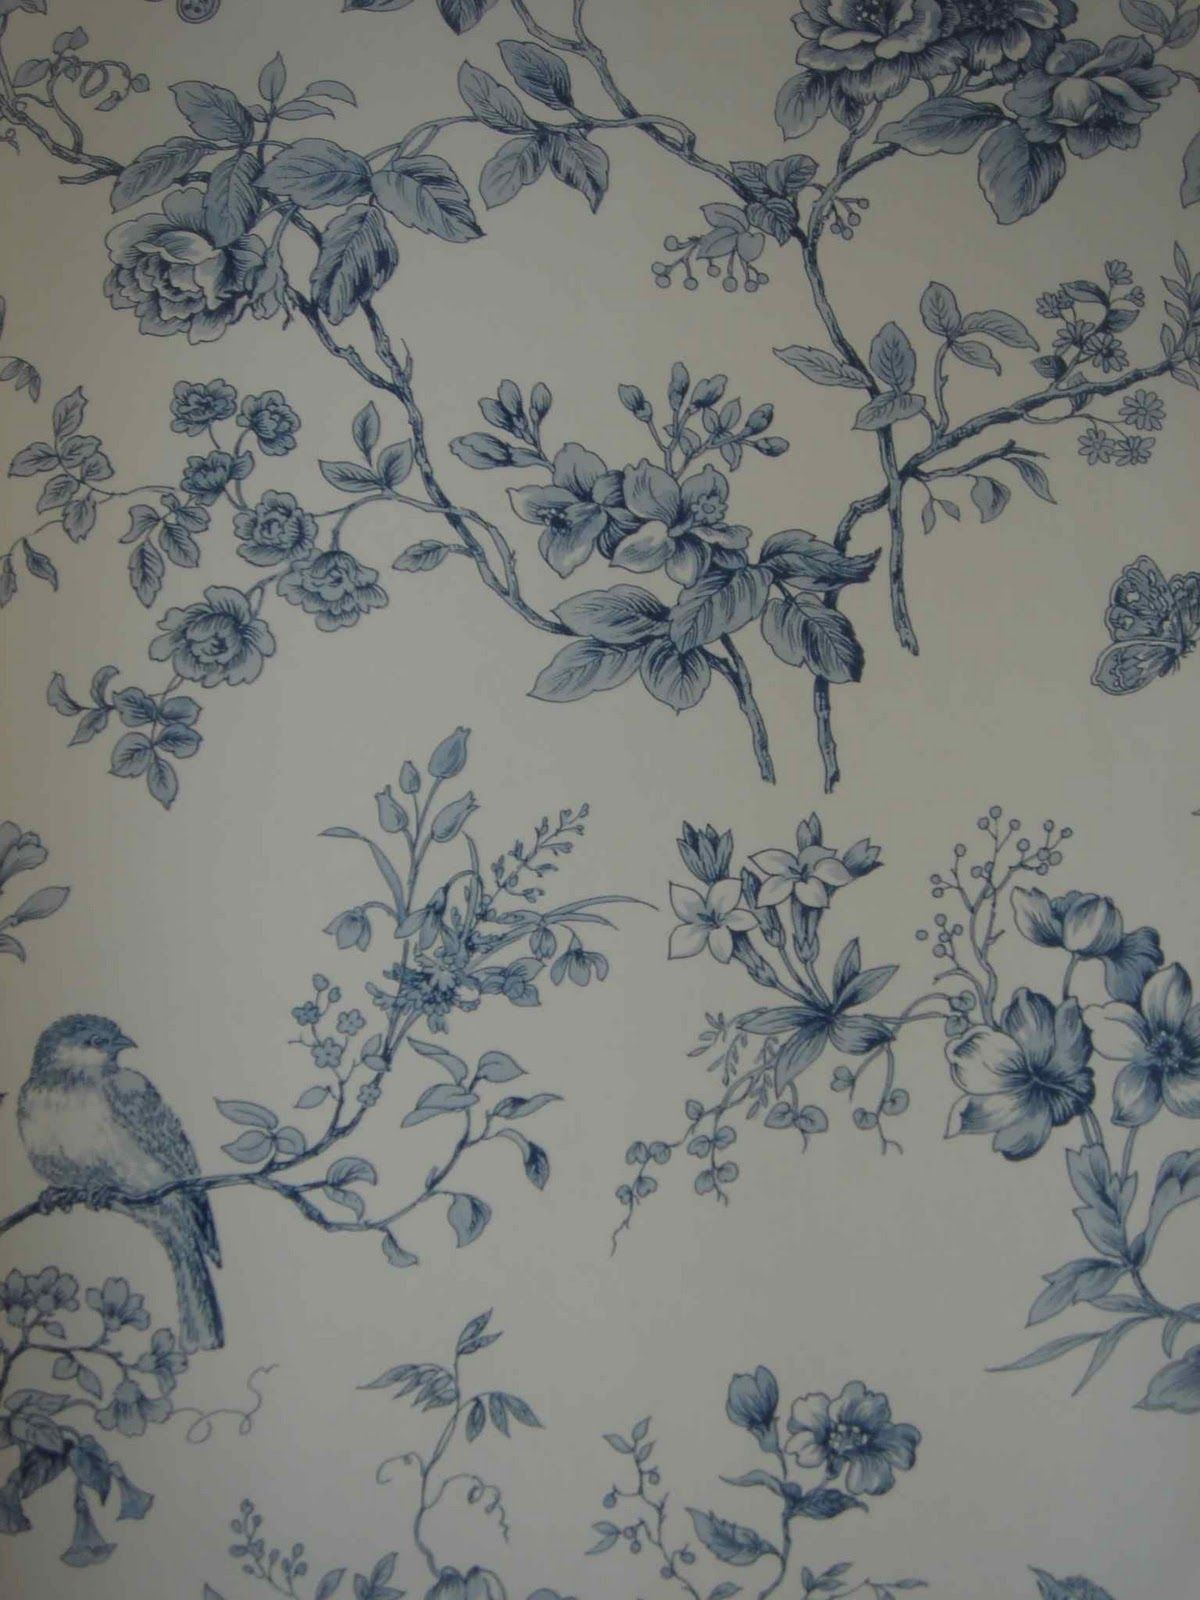 cottage style wallpapers group wallpapers 4k pinterest cottage rh pinterest com cottage style wallpapered rooms cottage style wallpaper books